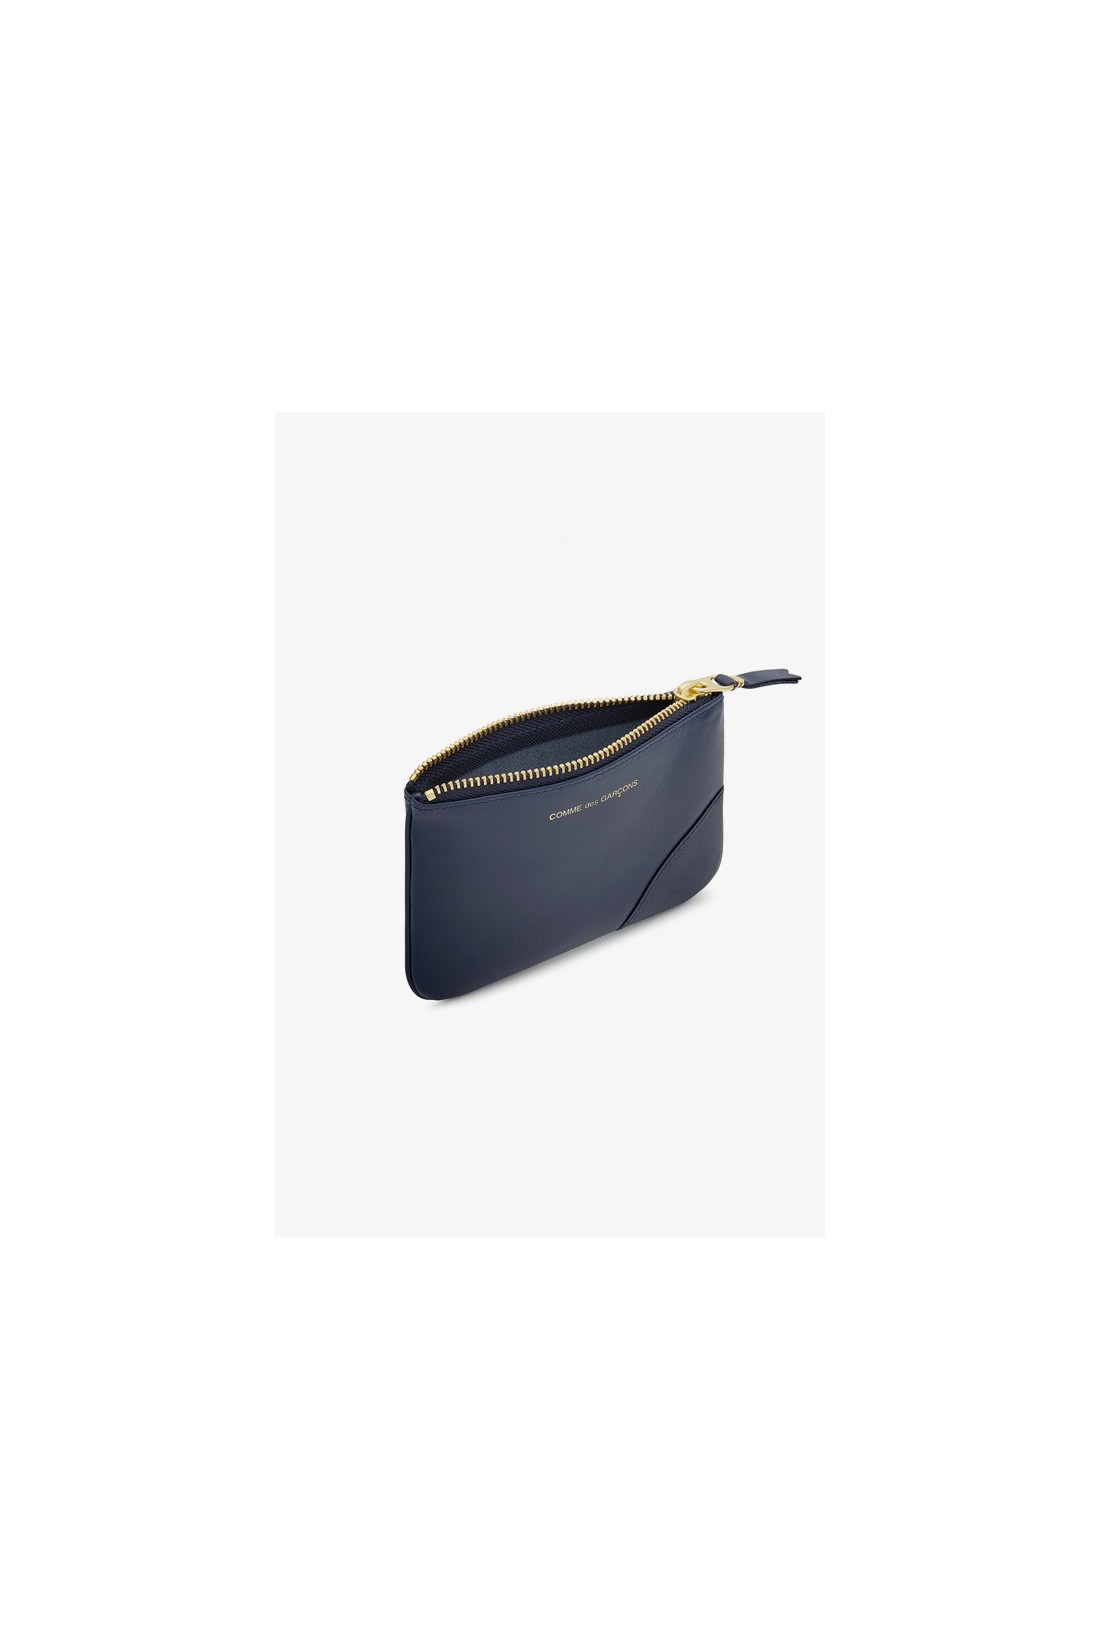 CDG WALLETS / Cdg classic leather sa8100 Navy